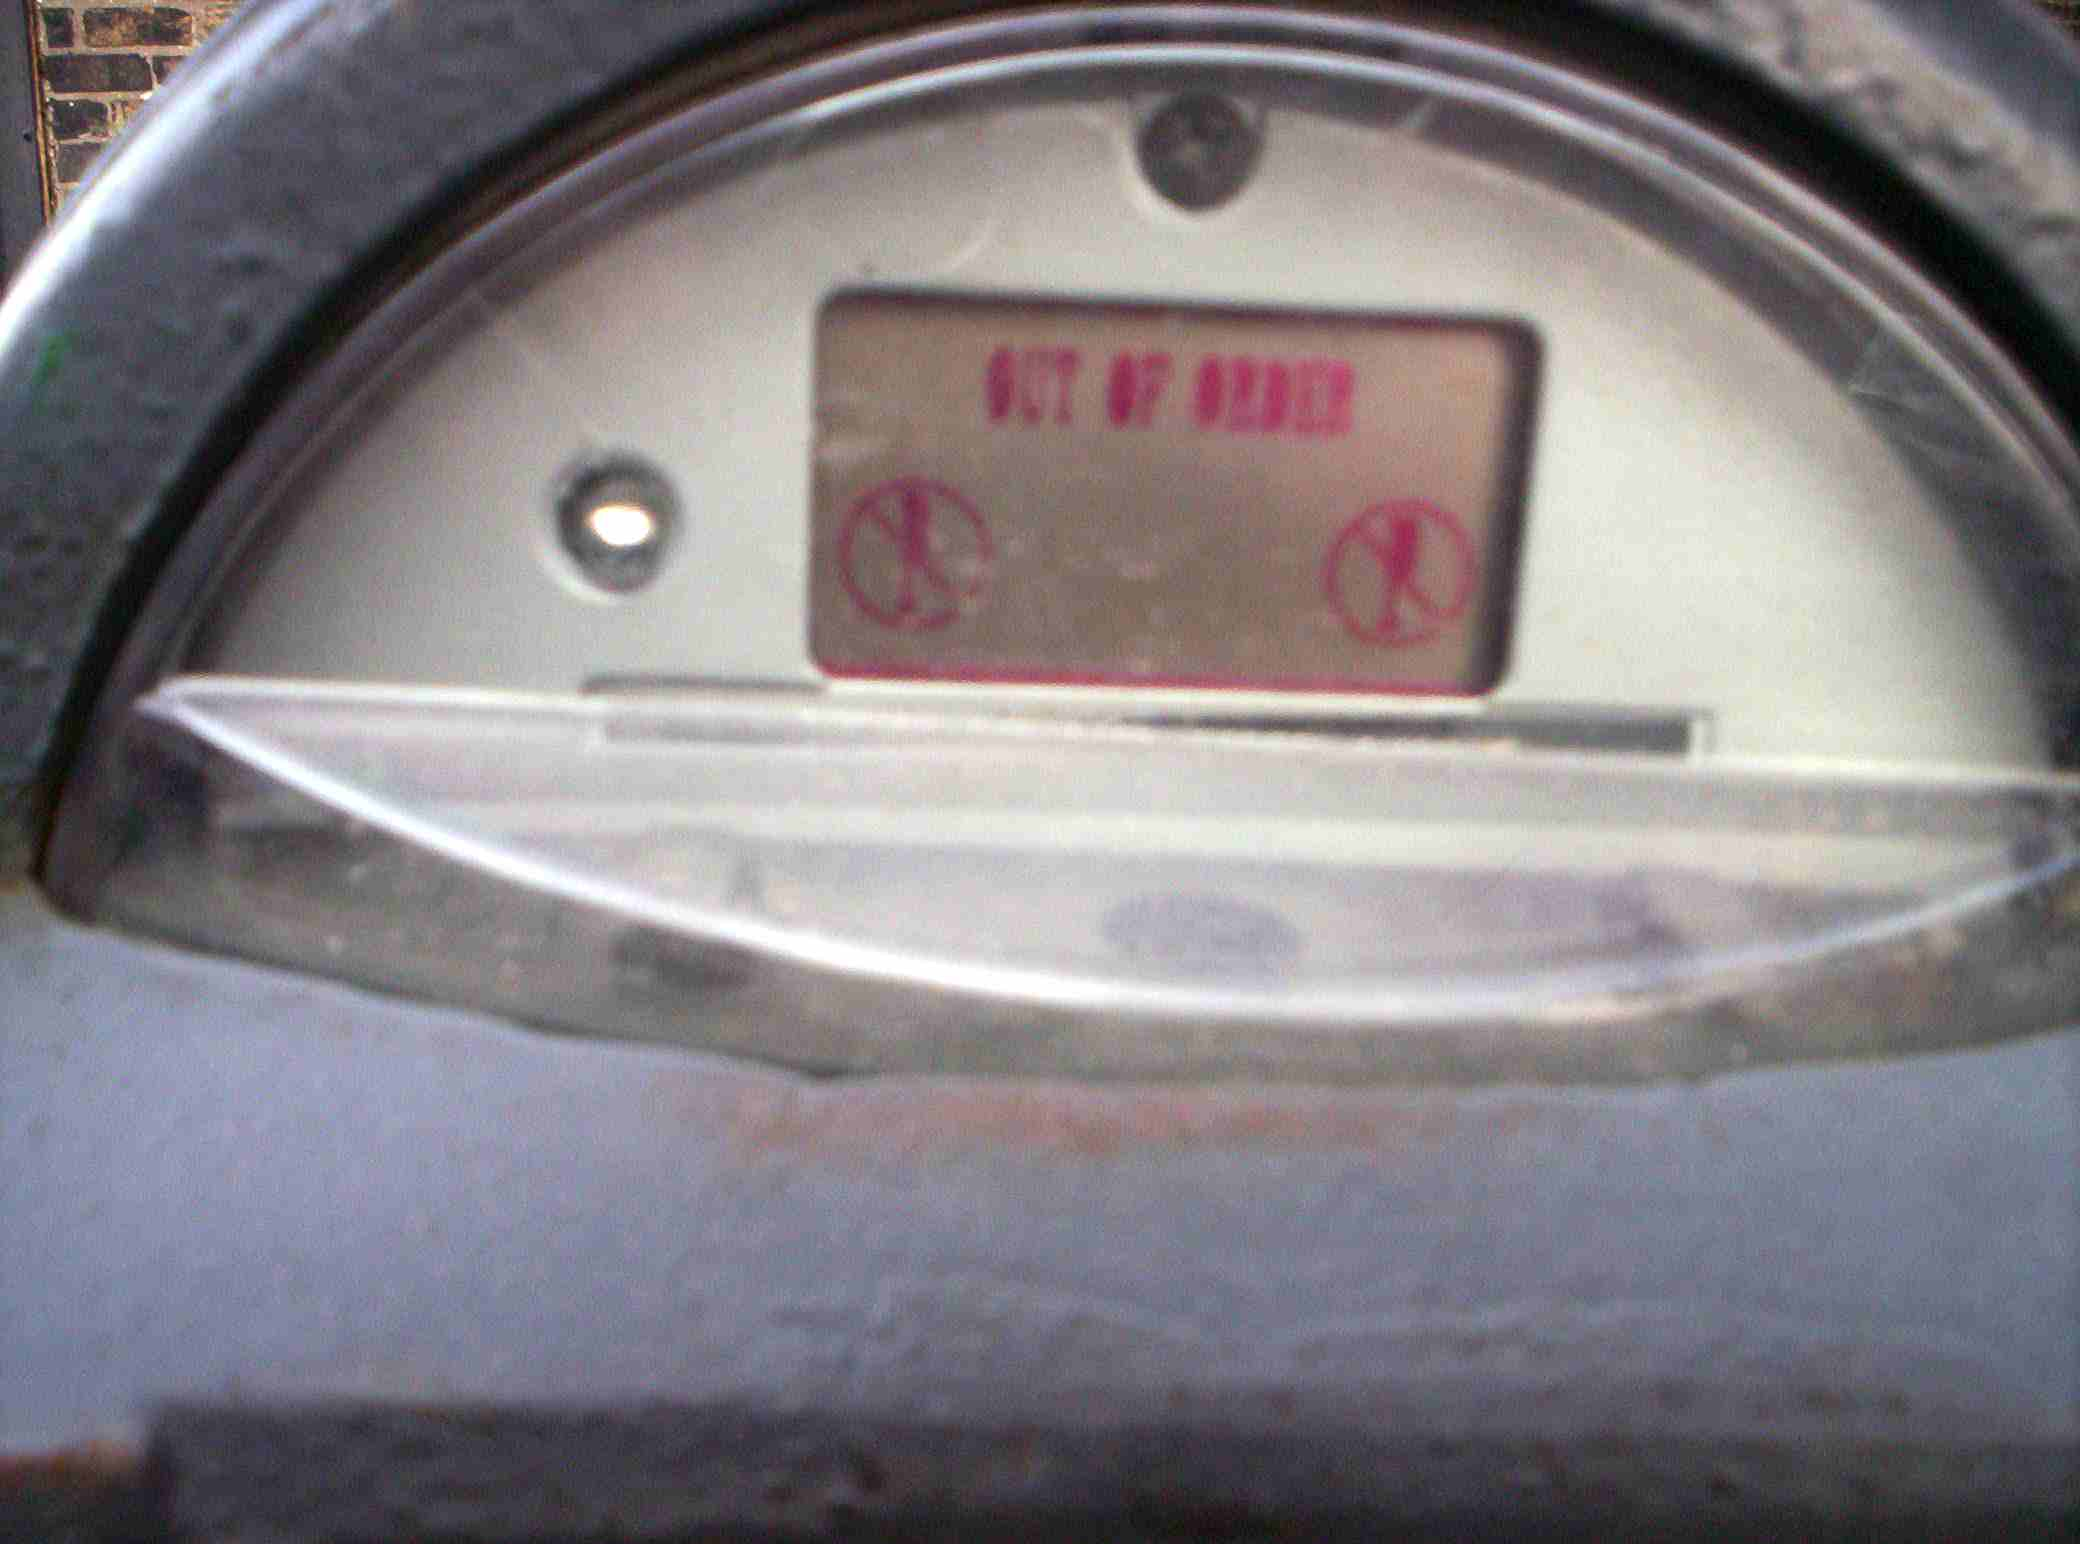 Out of Order meter